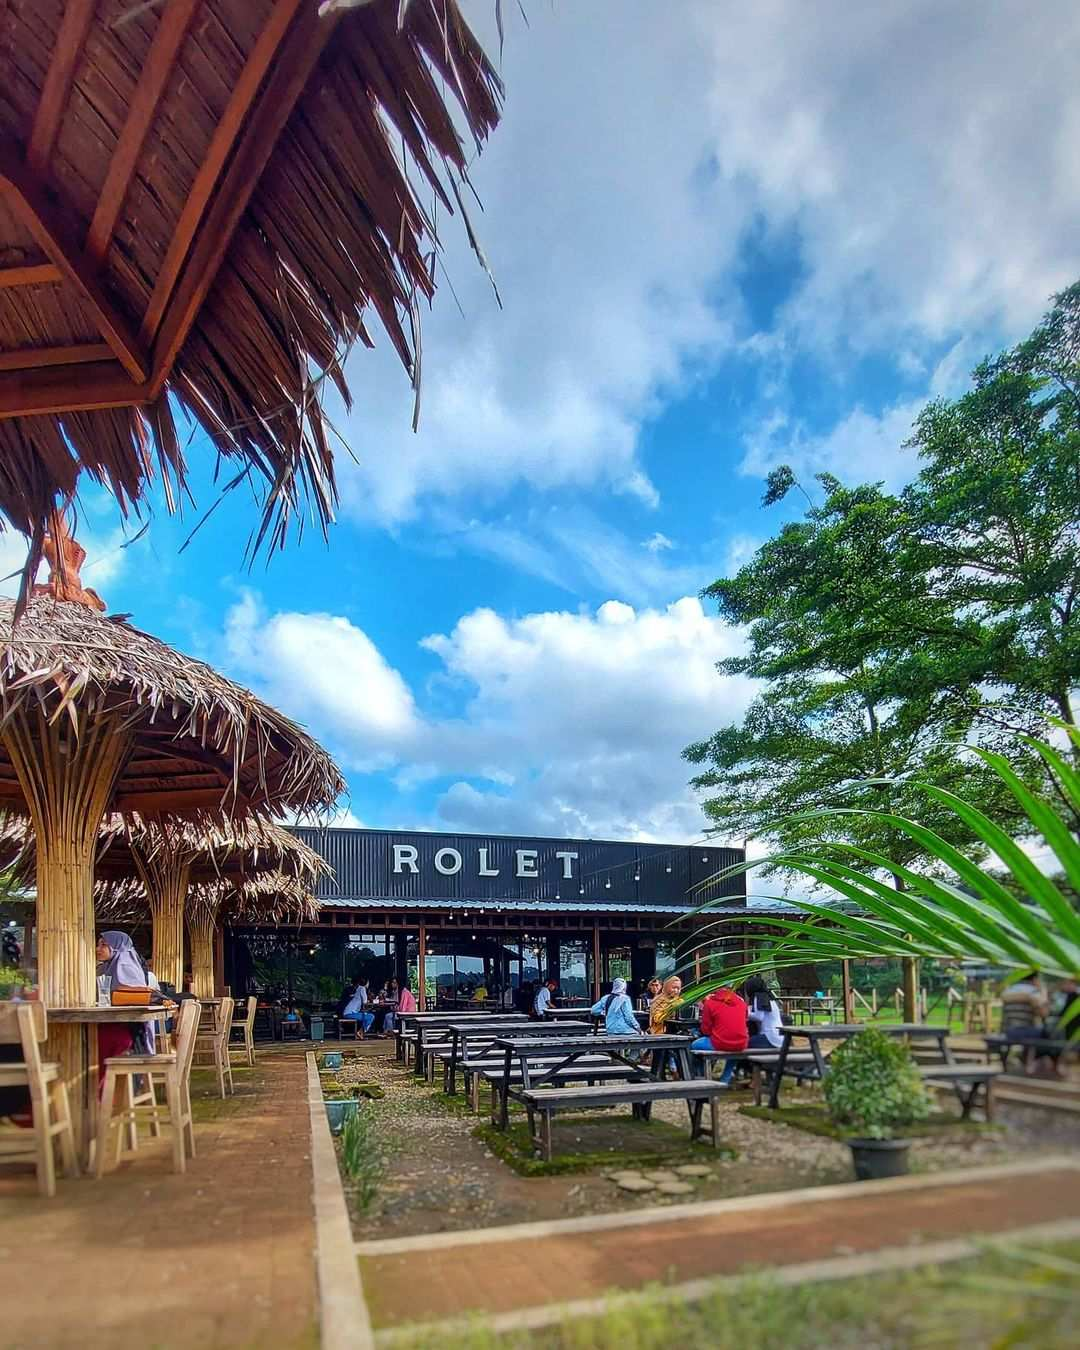 Cafe Rolet View Jepara Image From @caferolet_jepara